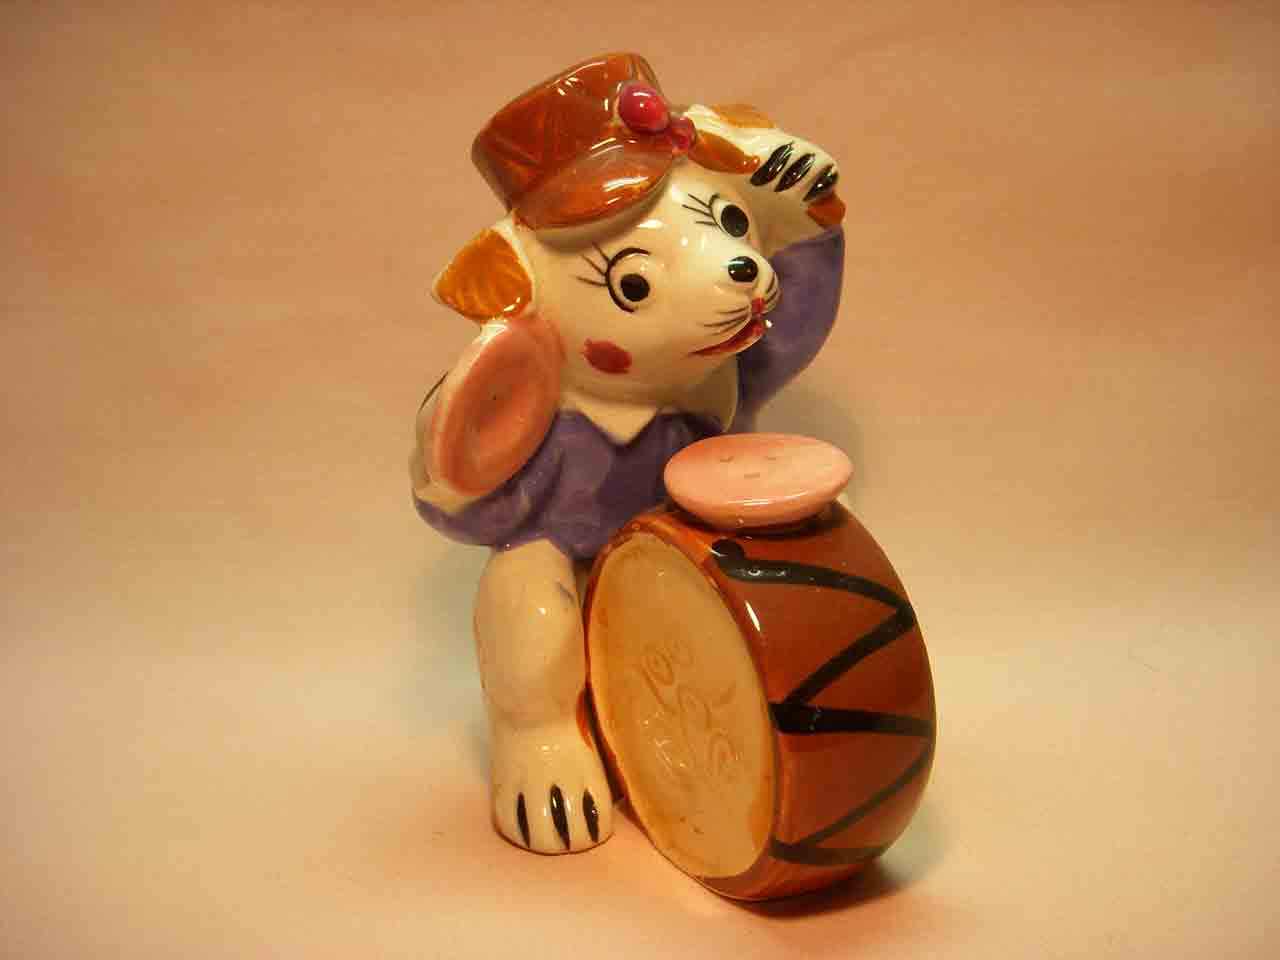 Animal musician playing drum salt and pepper shakers